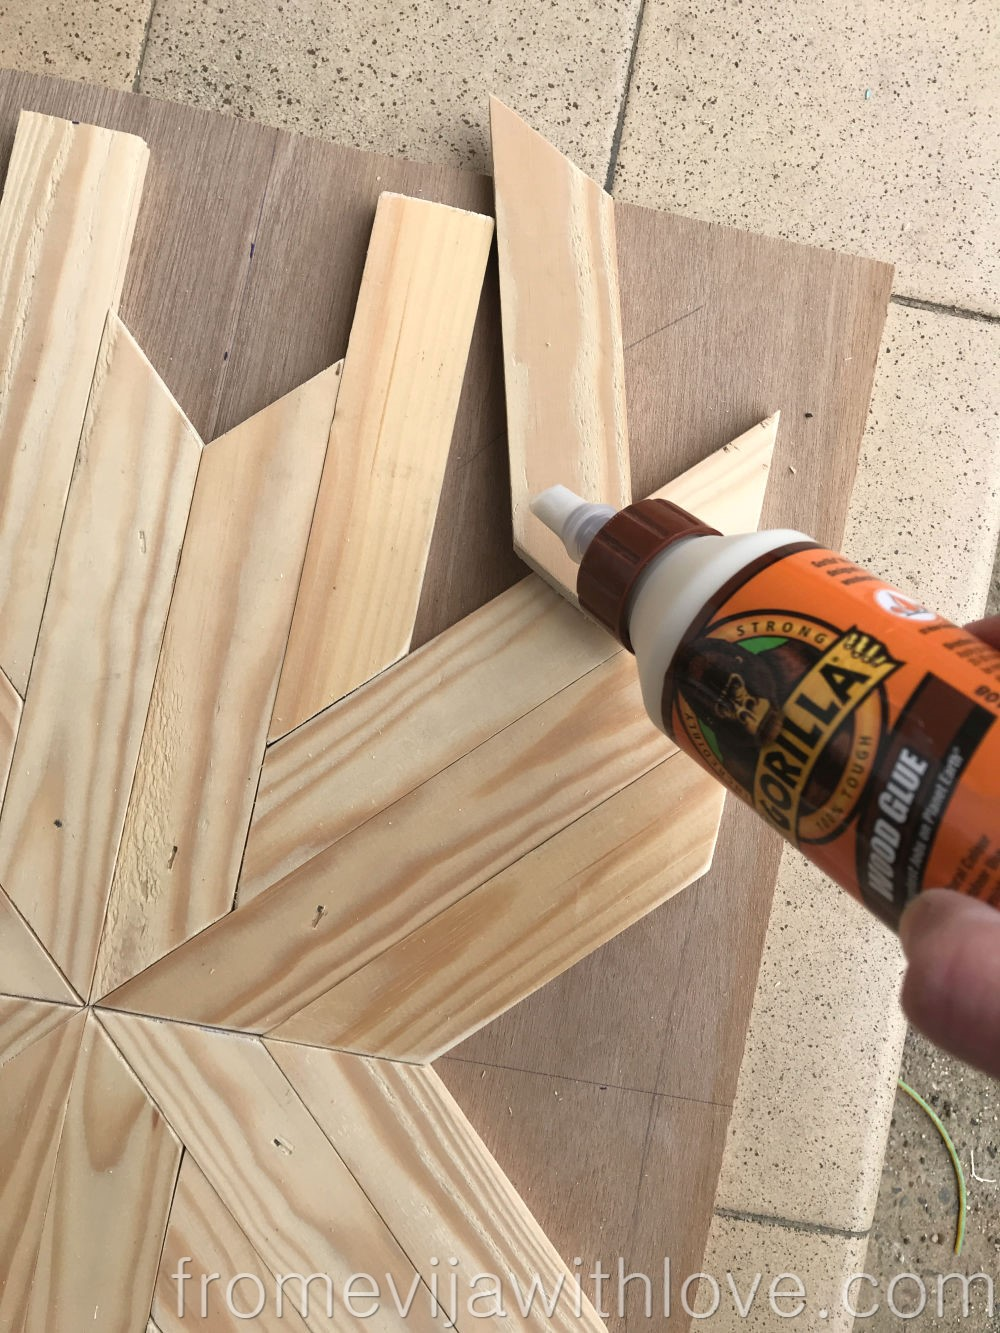 glueing wooden pieces together using Gorilla wood glue